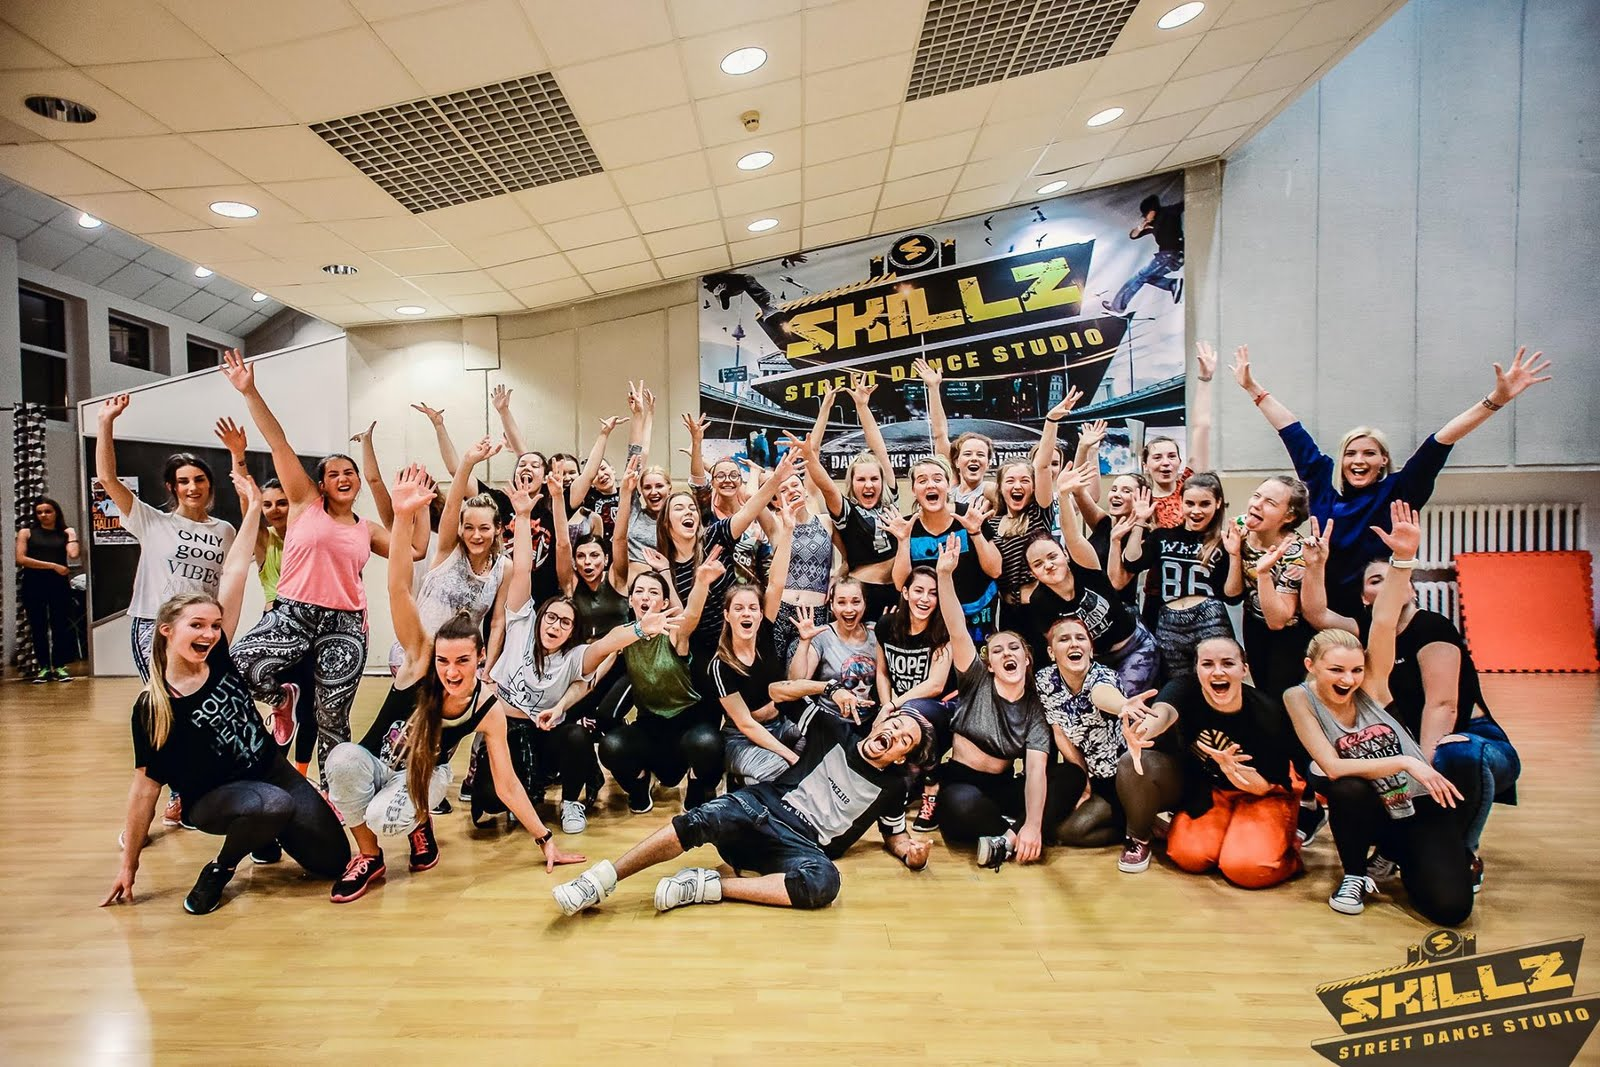 Dancehall workshop with Jiggy (France) - 53.jpg